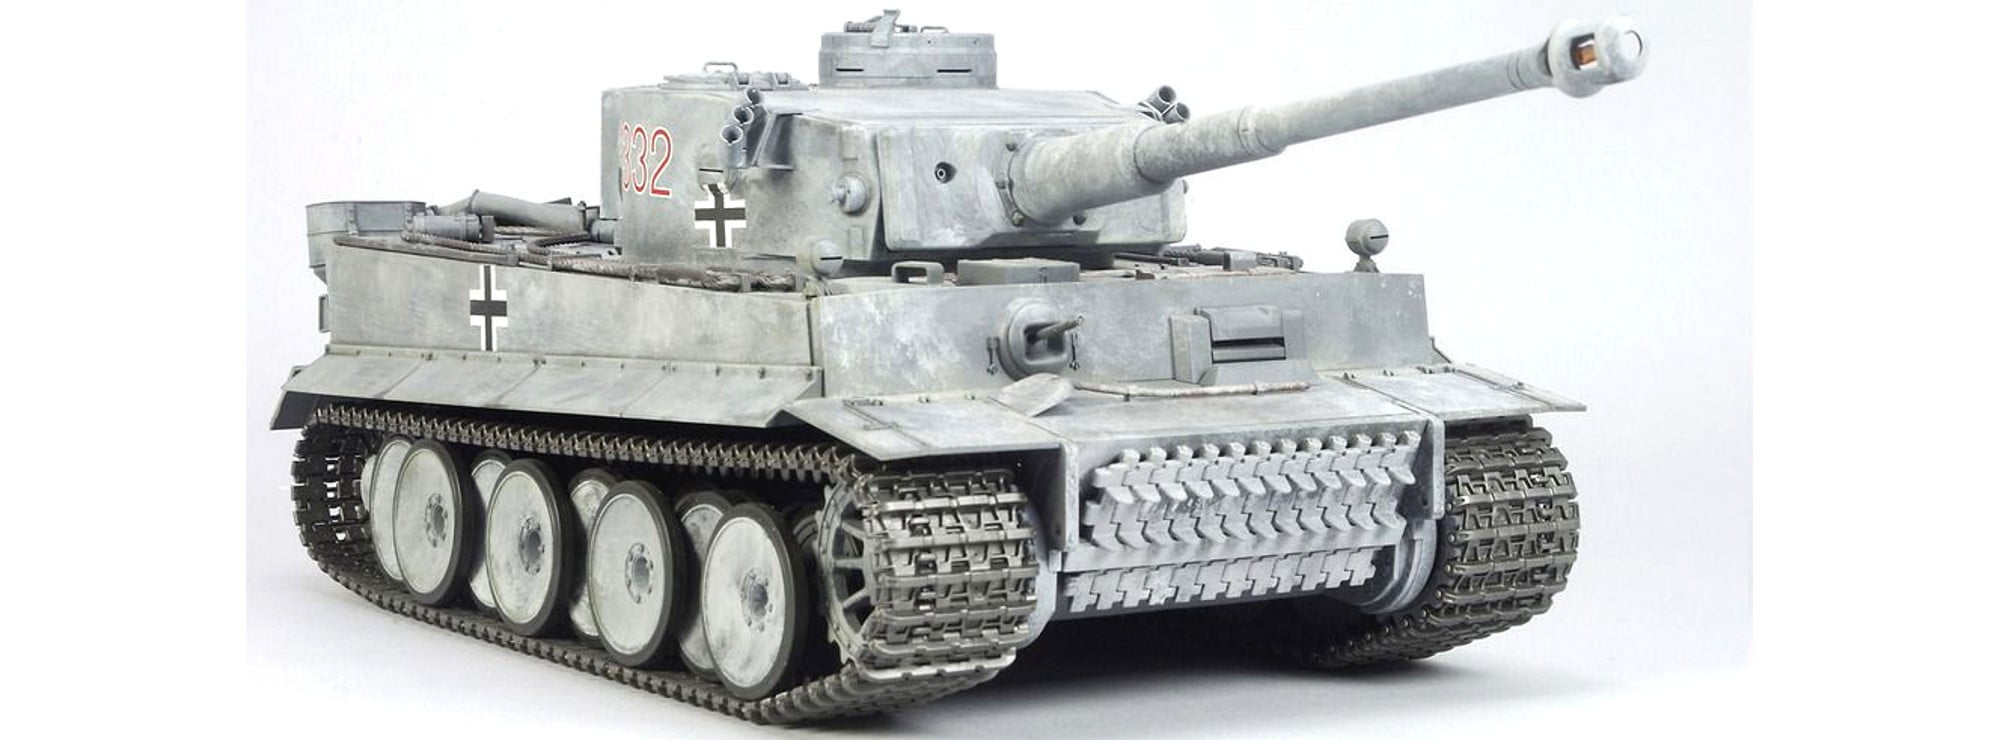 Tamiya Tiger 1 Early Production 1:16 Scale R C Tank Kit